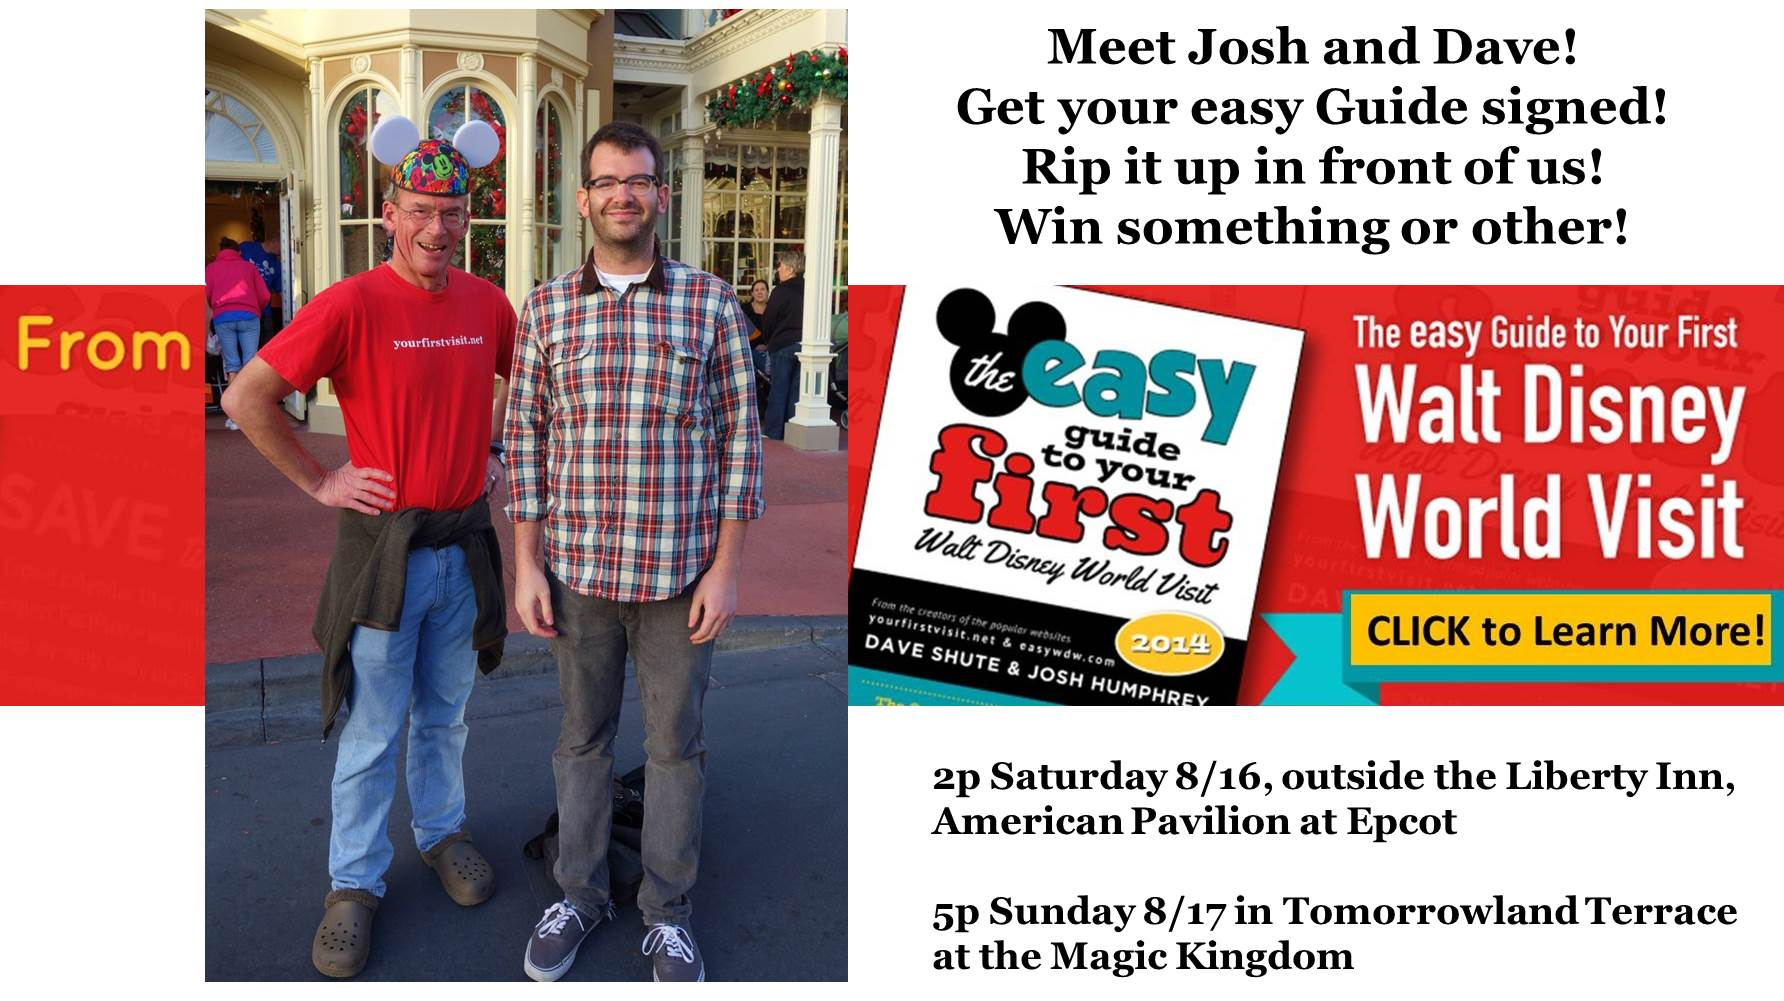 The easy Guide Authors Meet-up 8-16 and 8-17